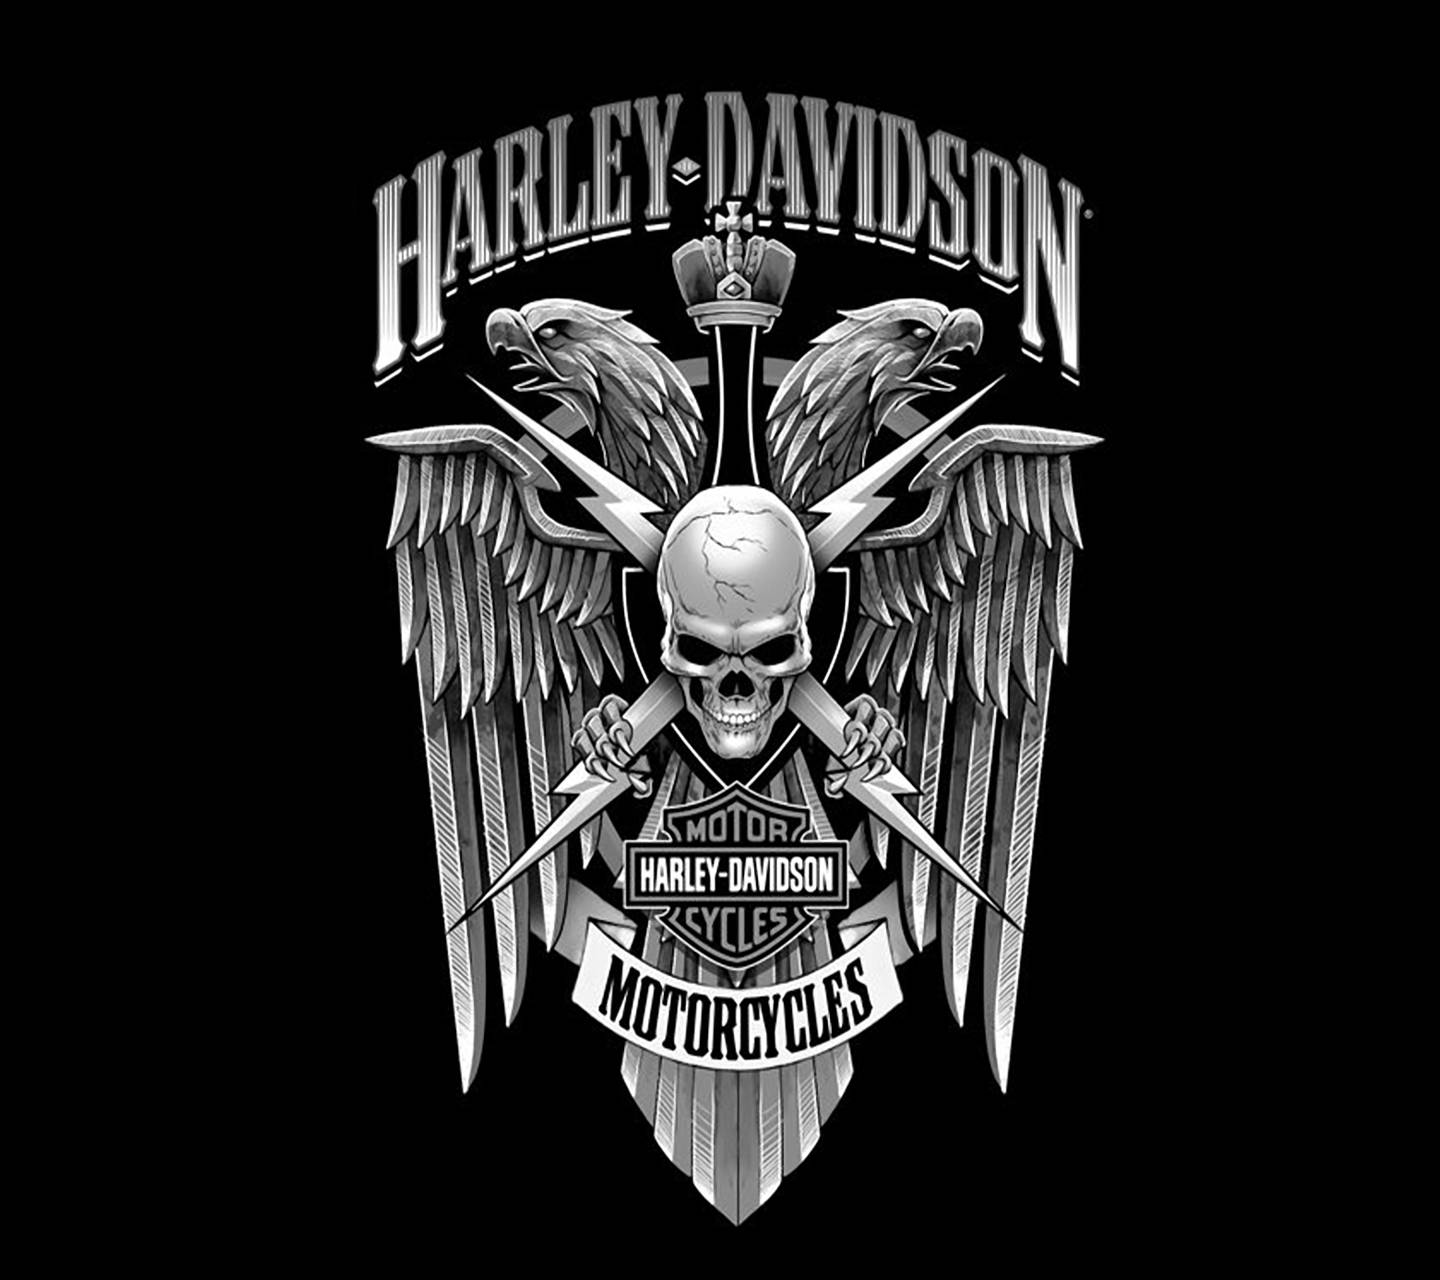 Download free harley davidson wallpapers for your mobile phone harley skull logo voltagebd Choice Image